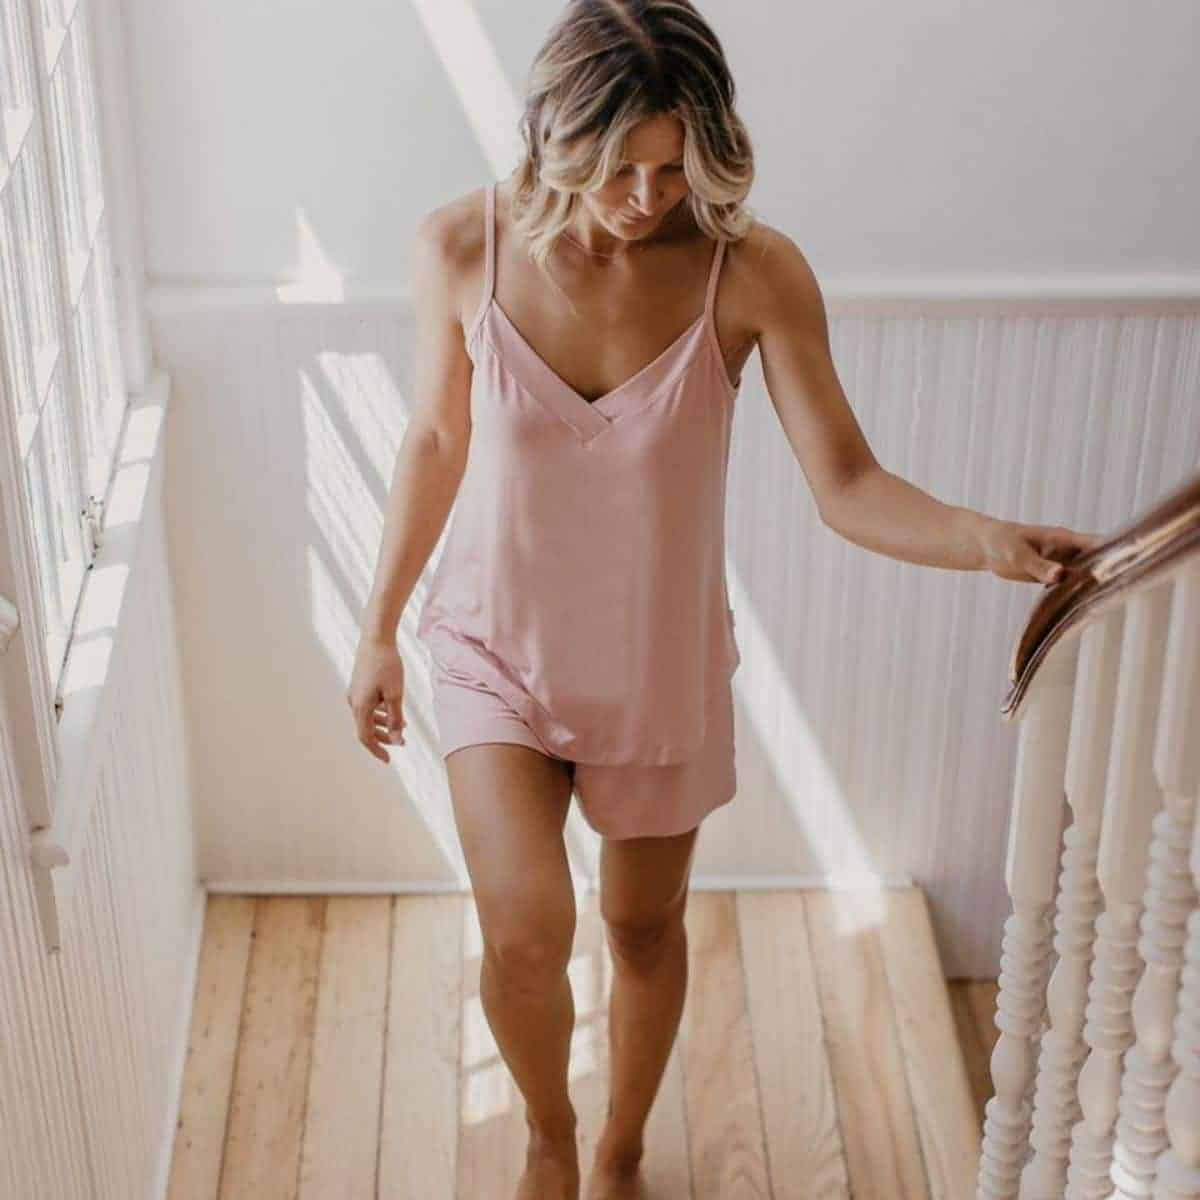 While some of you may prefer to sleep in your sustainable skivvies and others in some luxe lingerie, sometimes you just need a good old fashioned pair of lounge PJs Image by Boody #fairtradepajamas #sustainablesleepwear